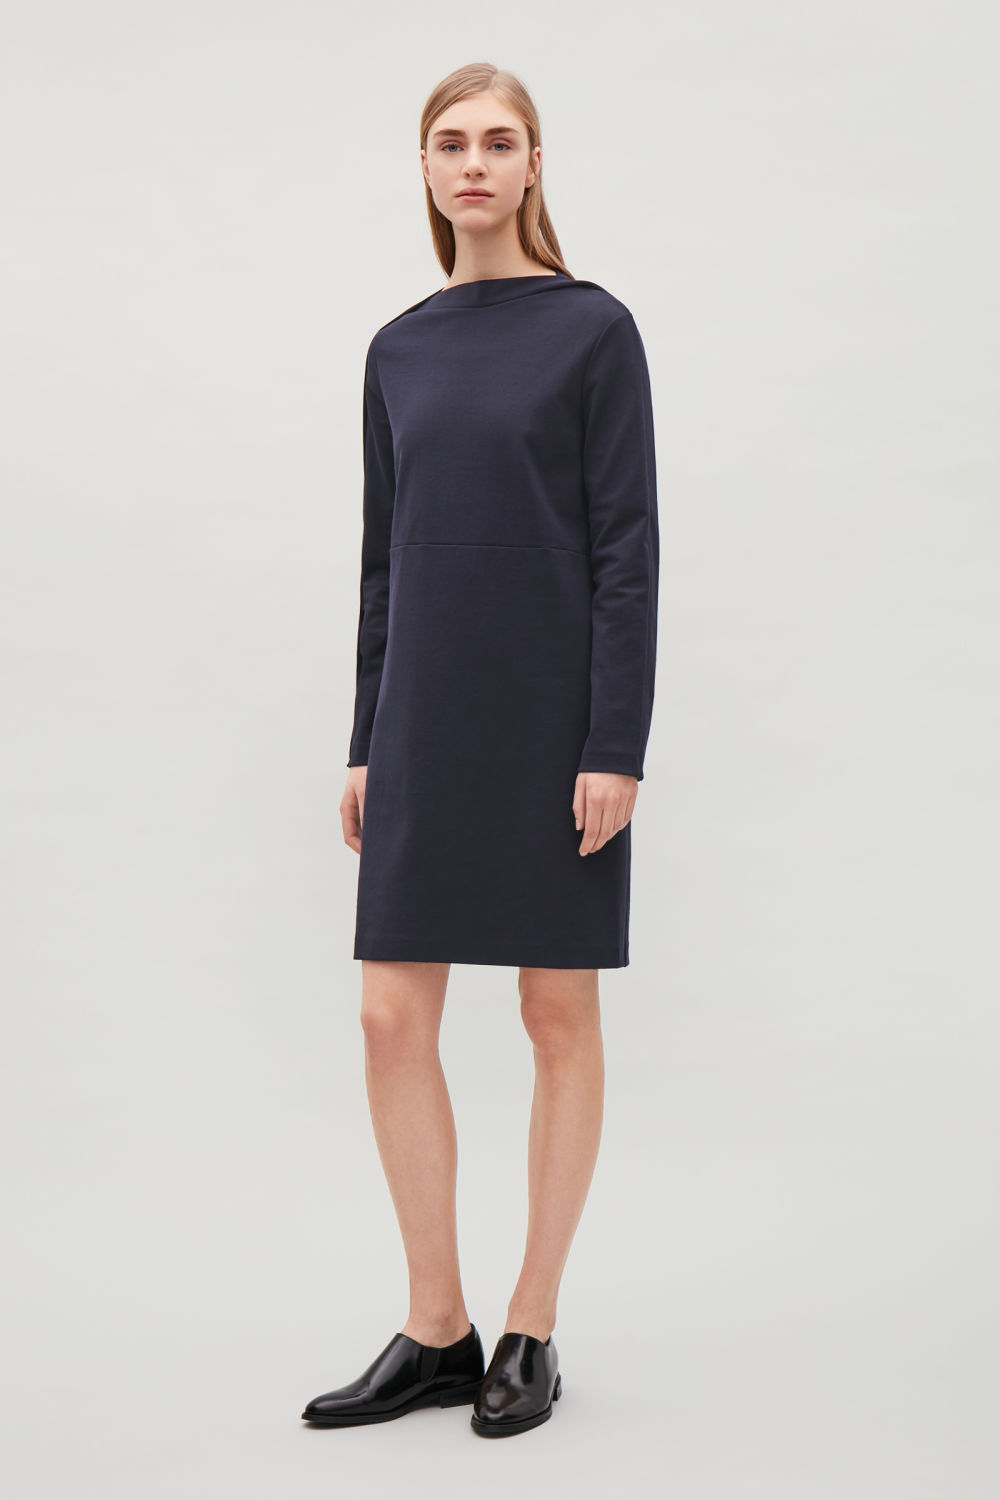 COS WIDE-NECK DRESS WITH OVERLAP TRIM,Navy